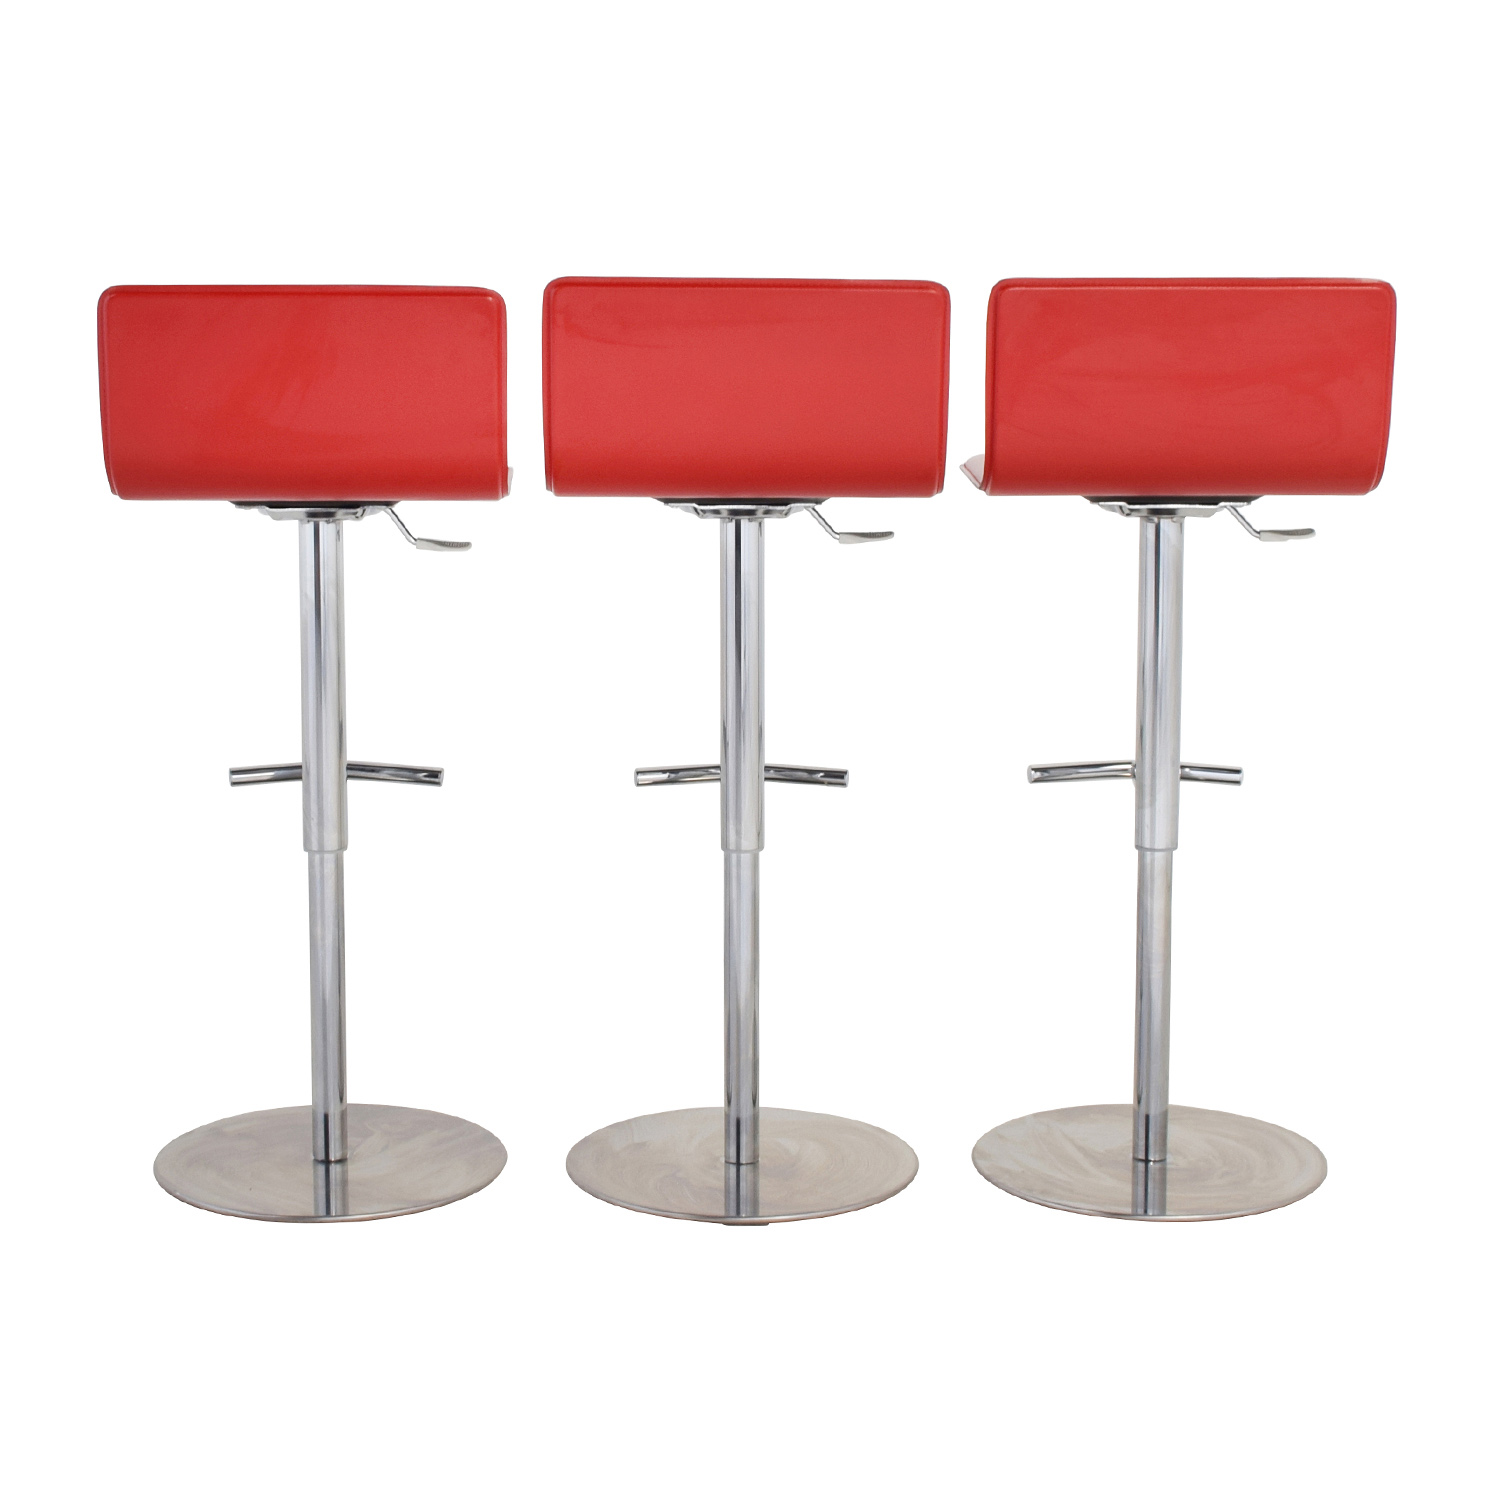 shop Trabaldo Italian Red Leather Adjustable Bar Stools Trabaldo Chairs